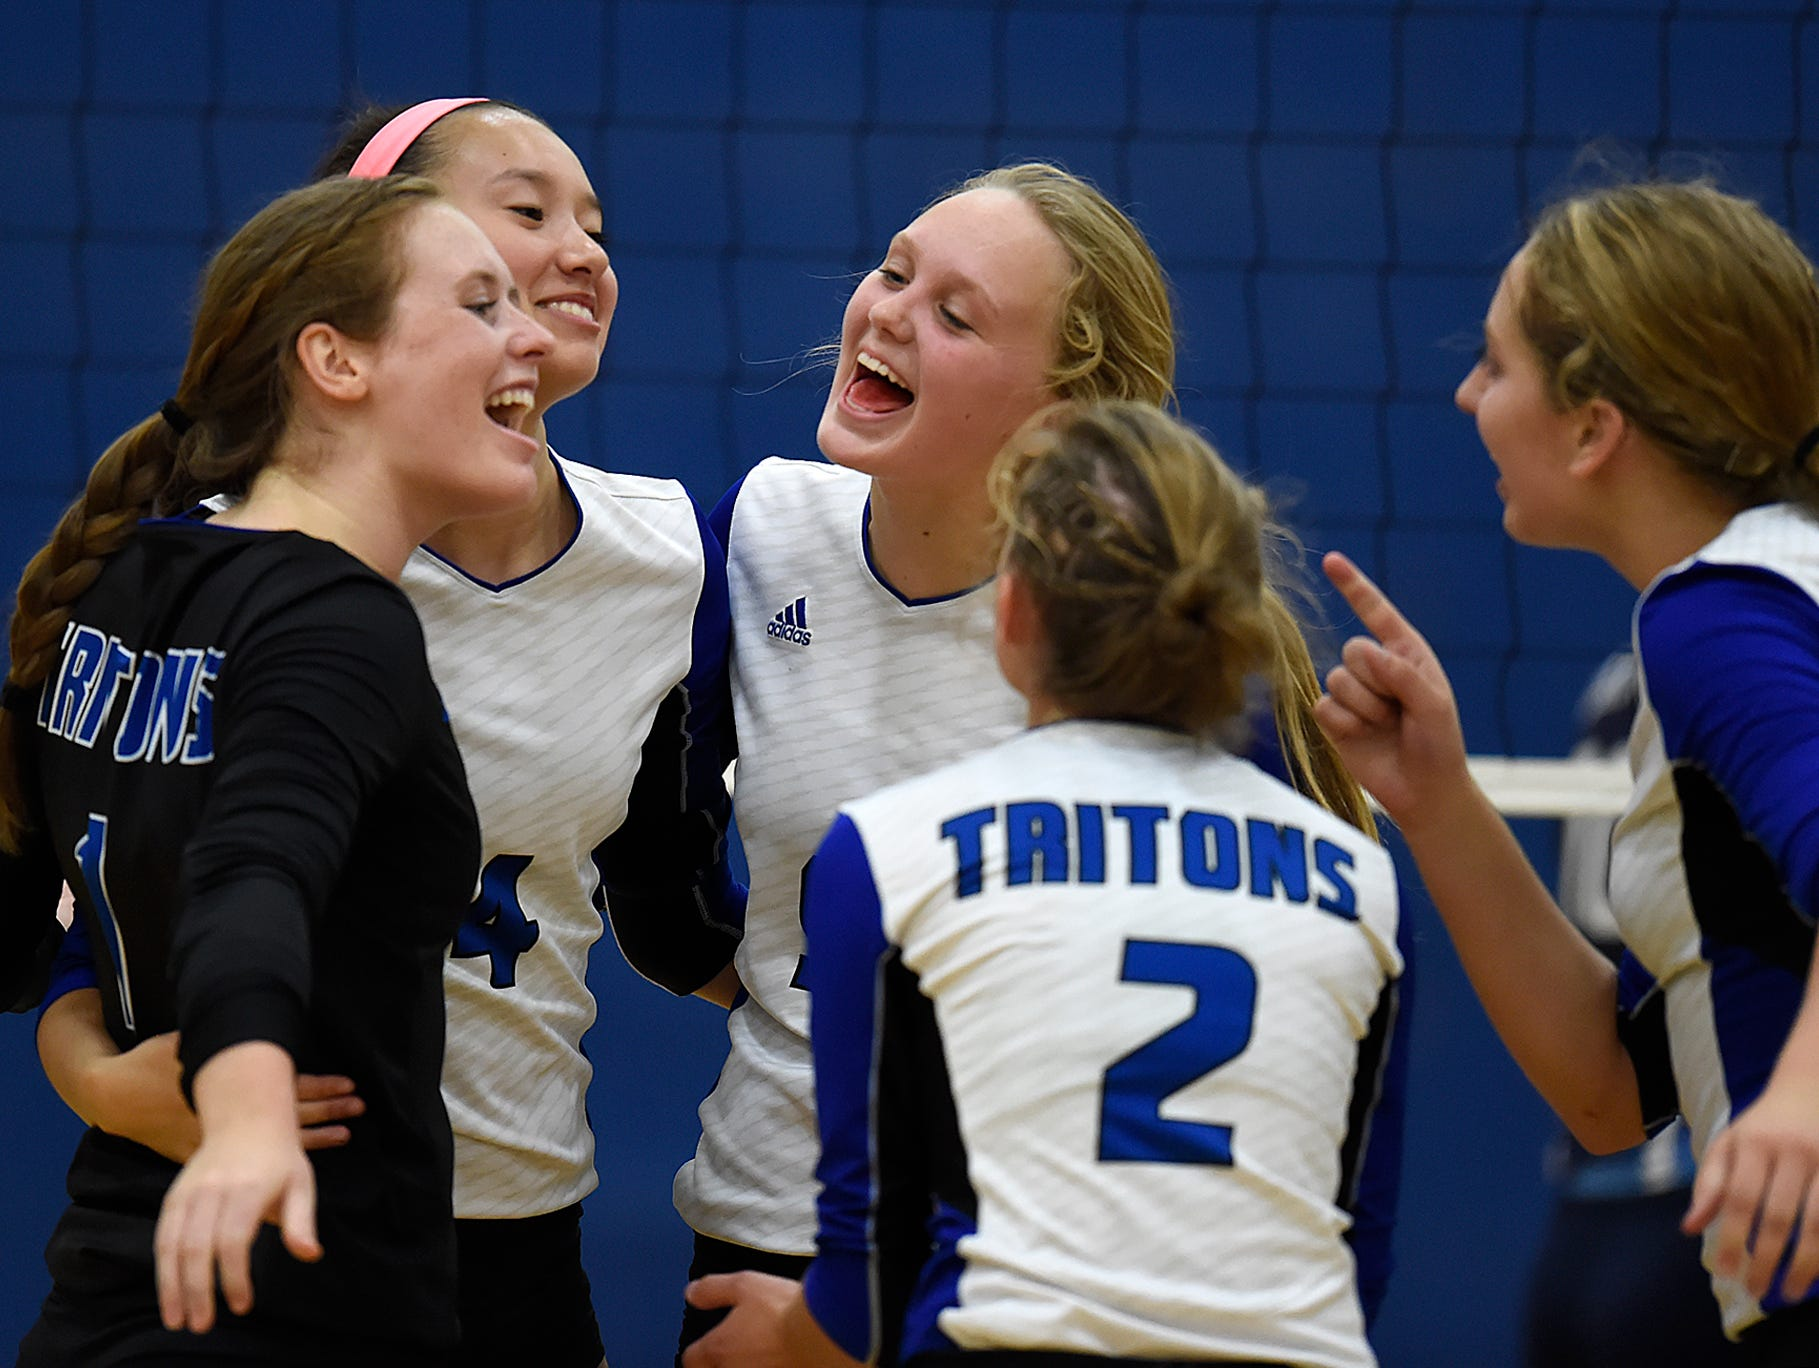 Green Bay Notre Dame senior libero Maureen Schick (left) celebrates with teammates after a point against Bay Port during a Fox River Classic Conference match earlier this season.